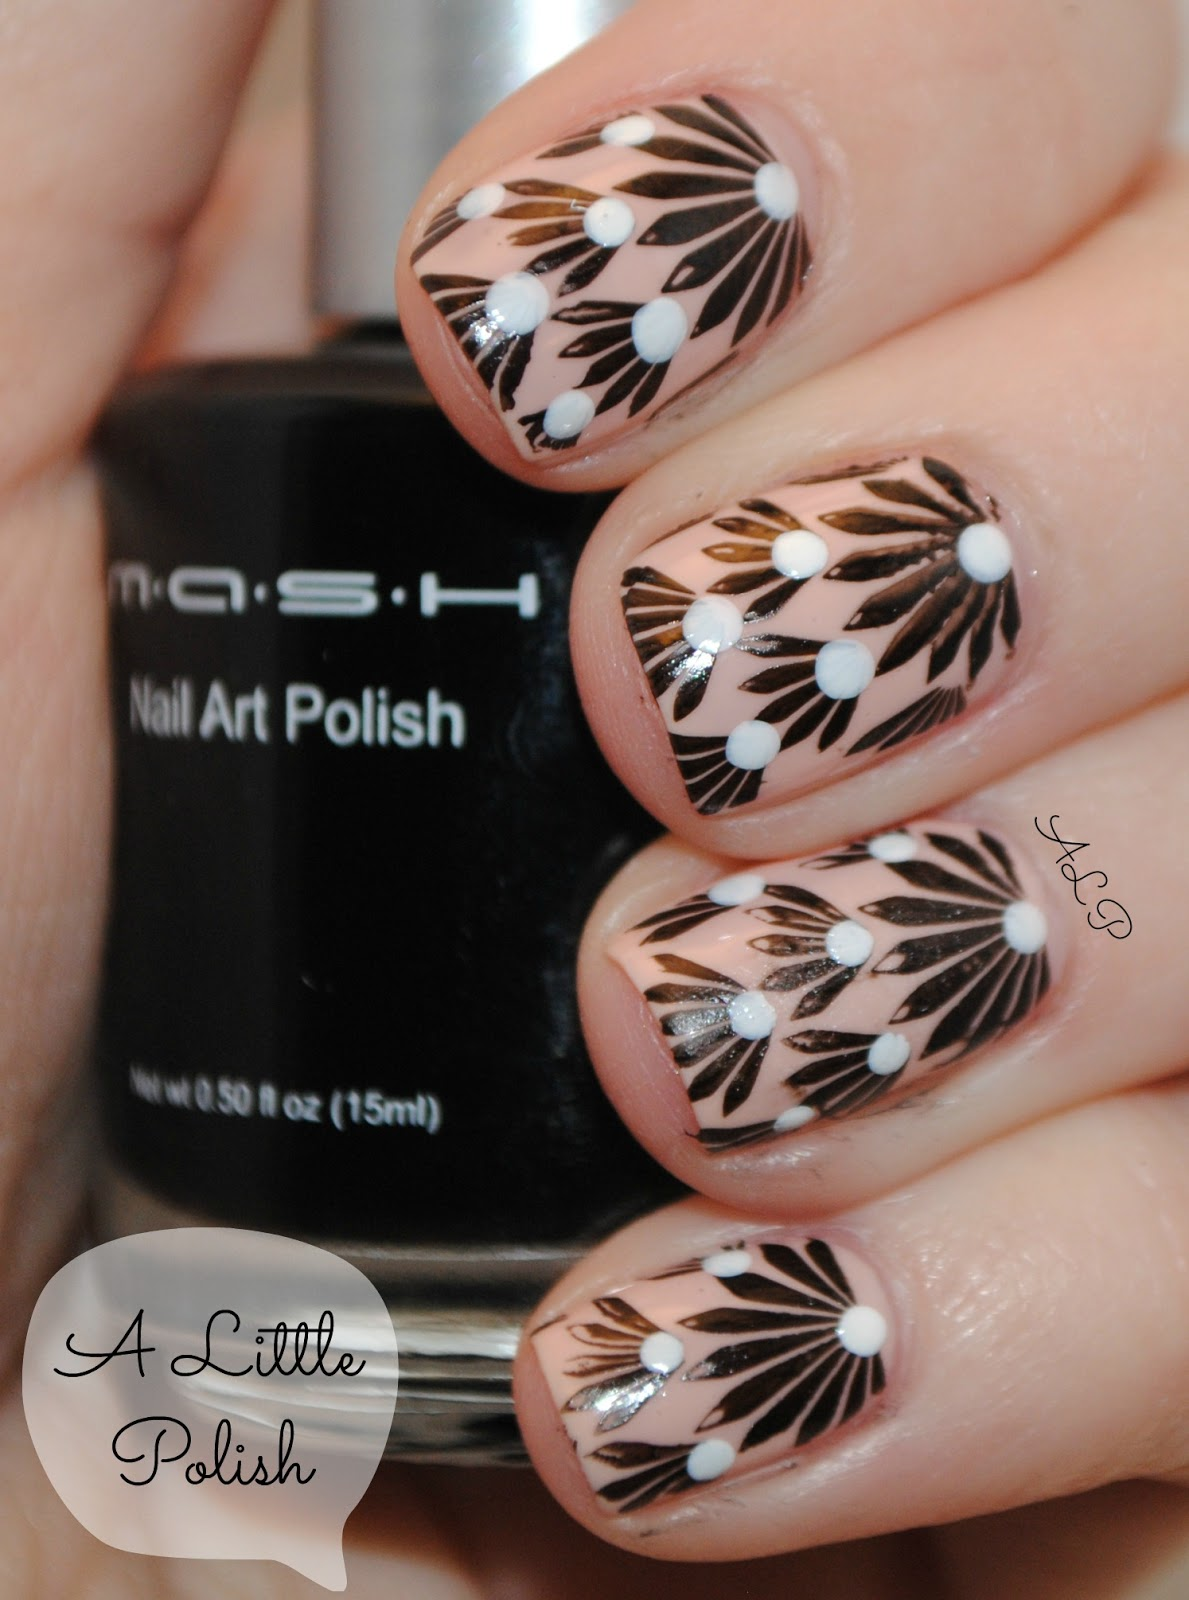 A Little Polish: MASH Nail Art Image Plate Set (26-50) - Review